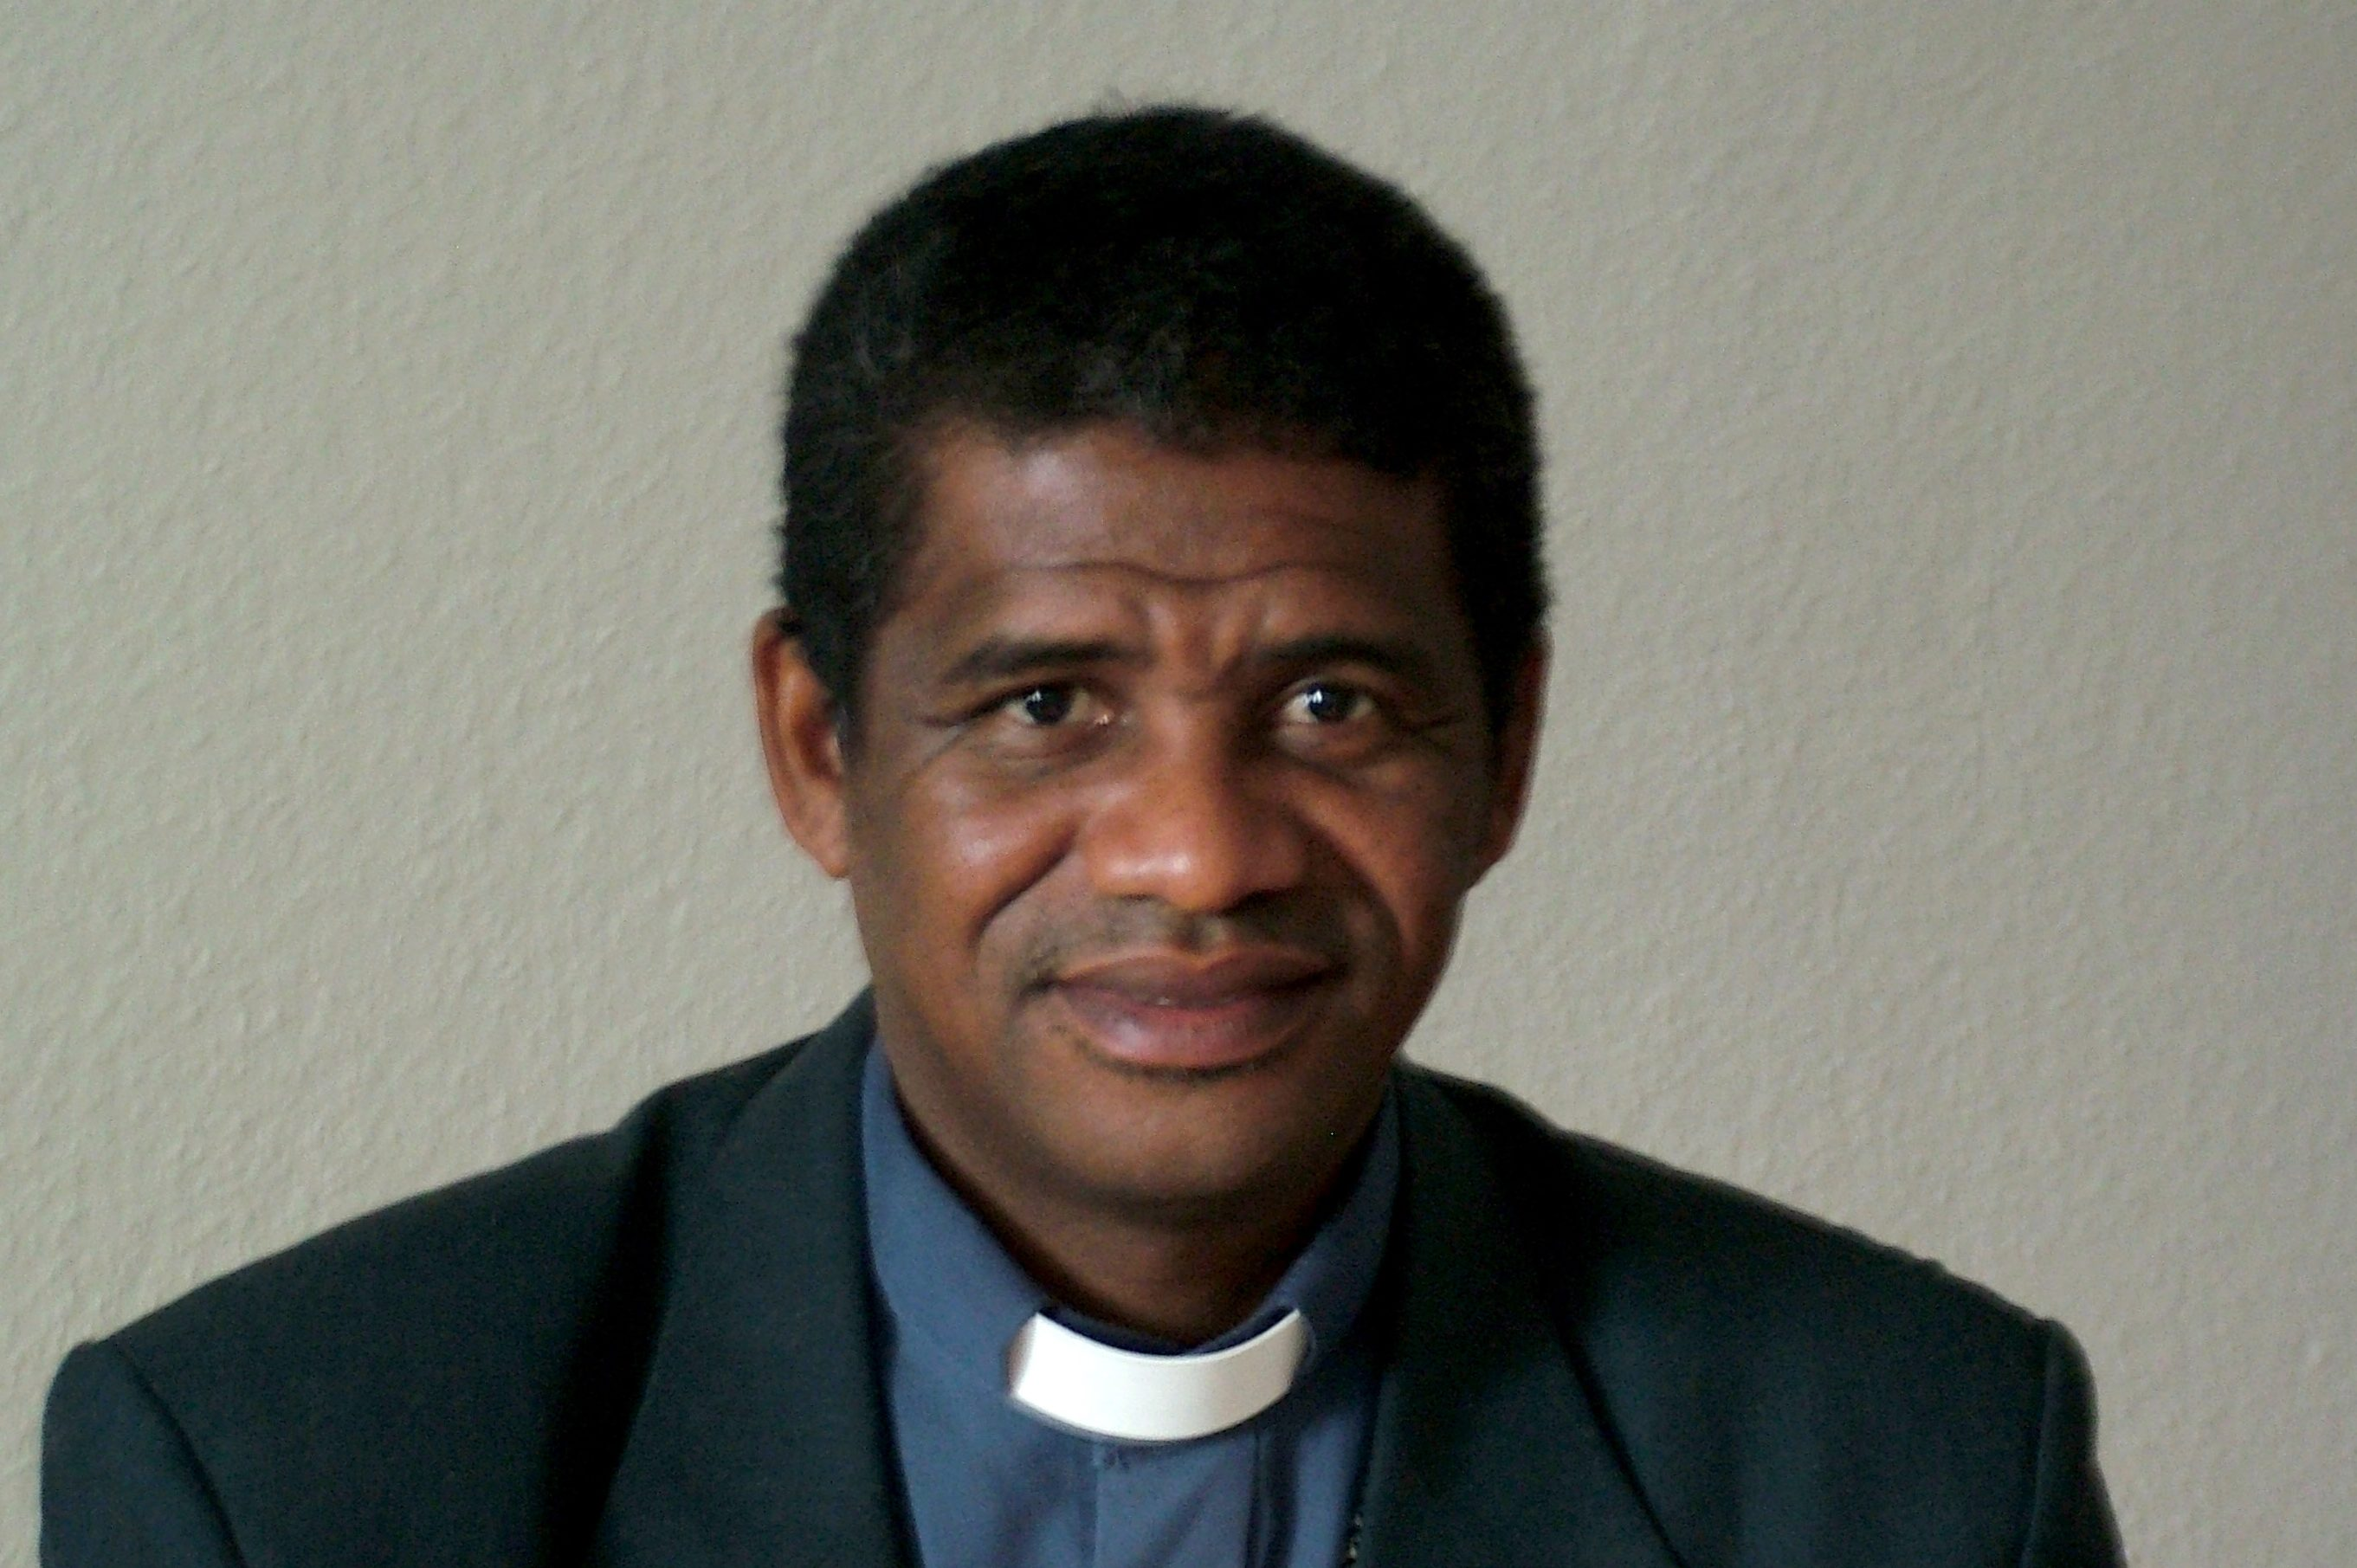 Cardinal-designate Désiré Tzarahazana of Toamasina, Madagascar (© Aid to the Church in Need)